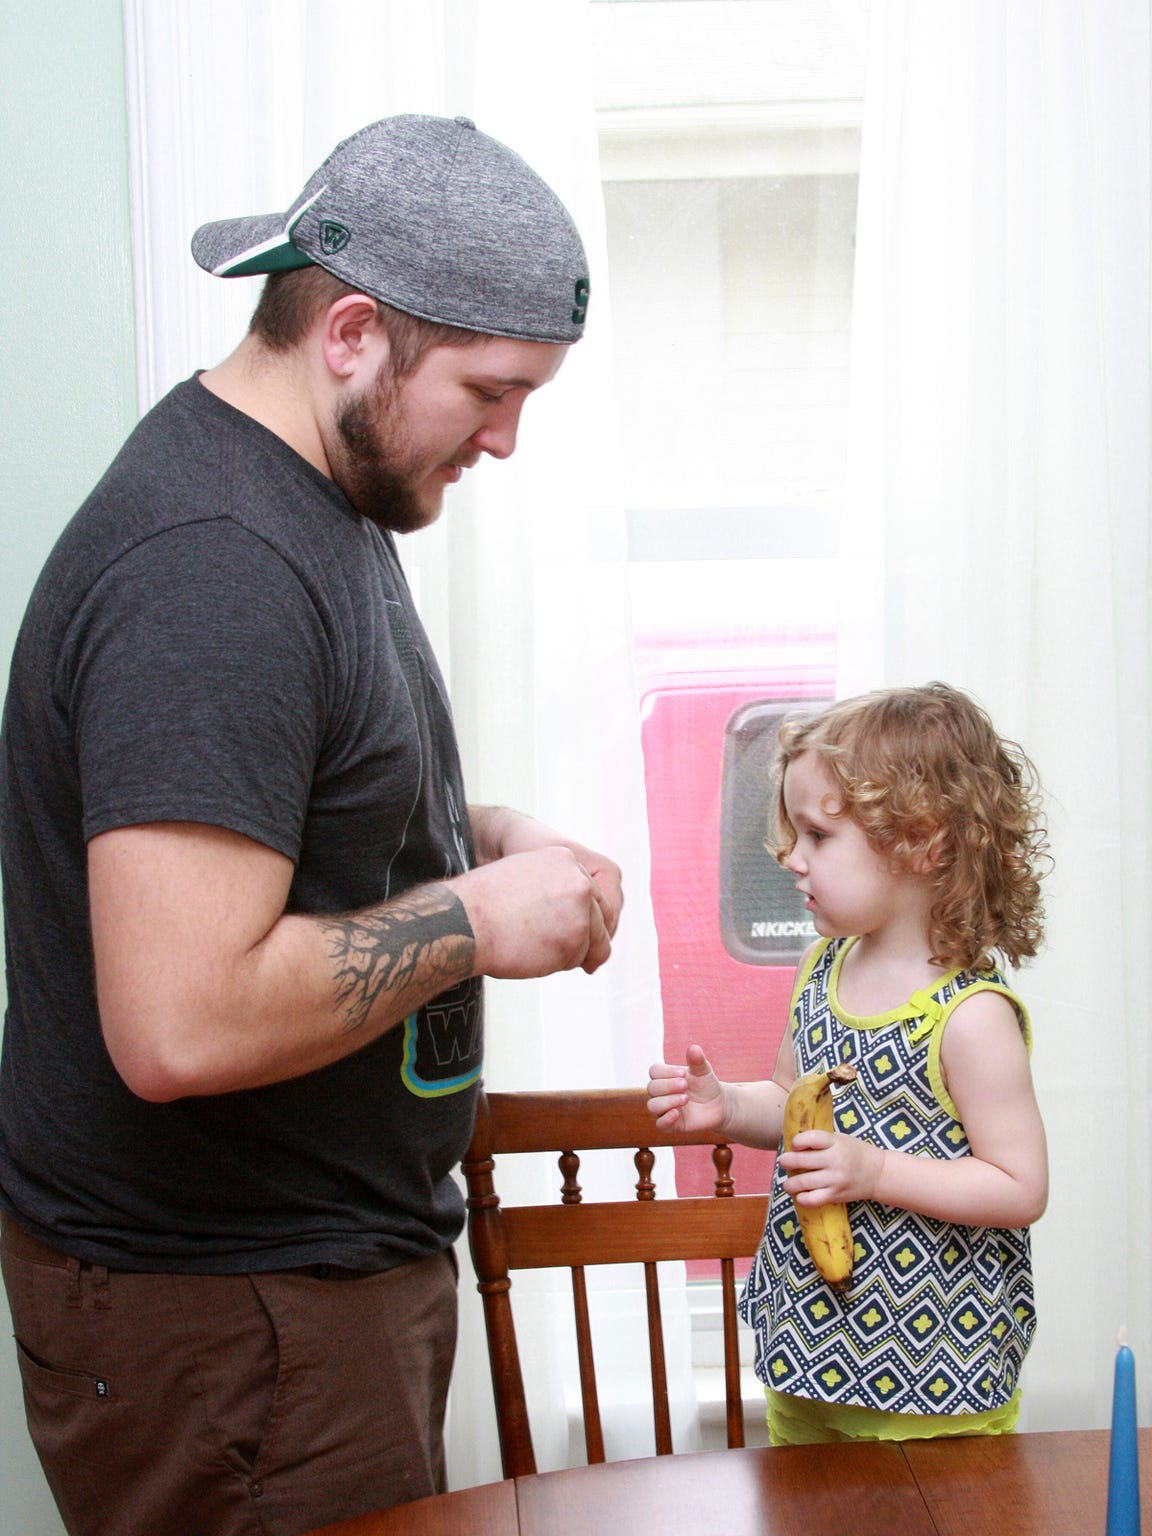 Shawn Bryant, 26, peels a clementine for his 2-year-old